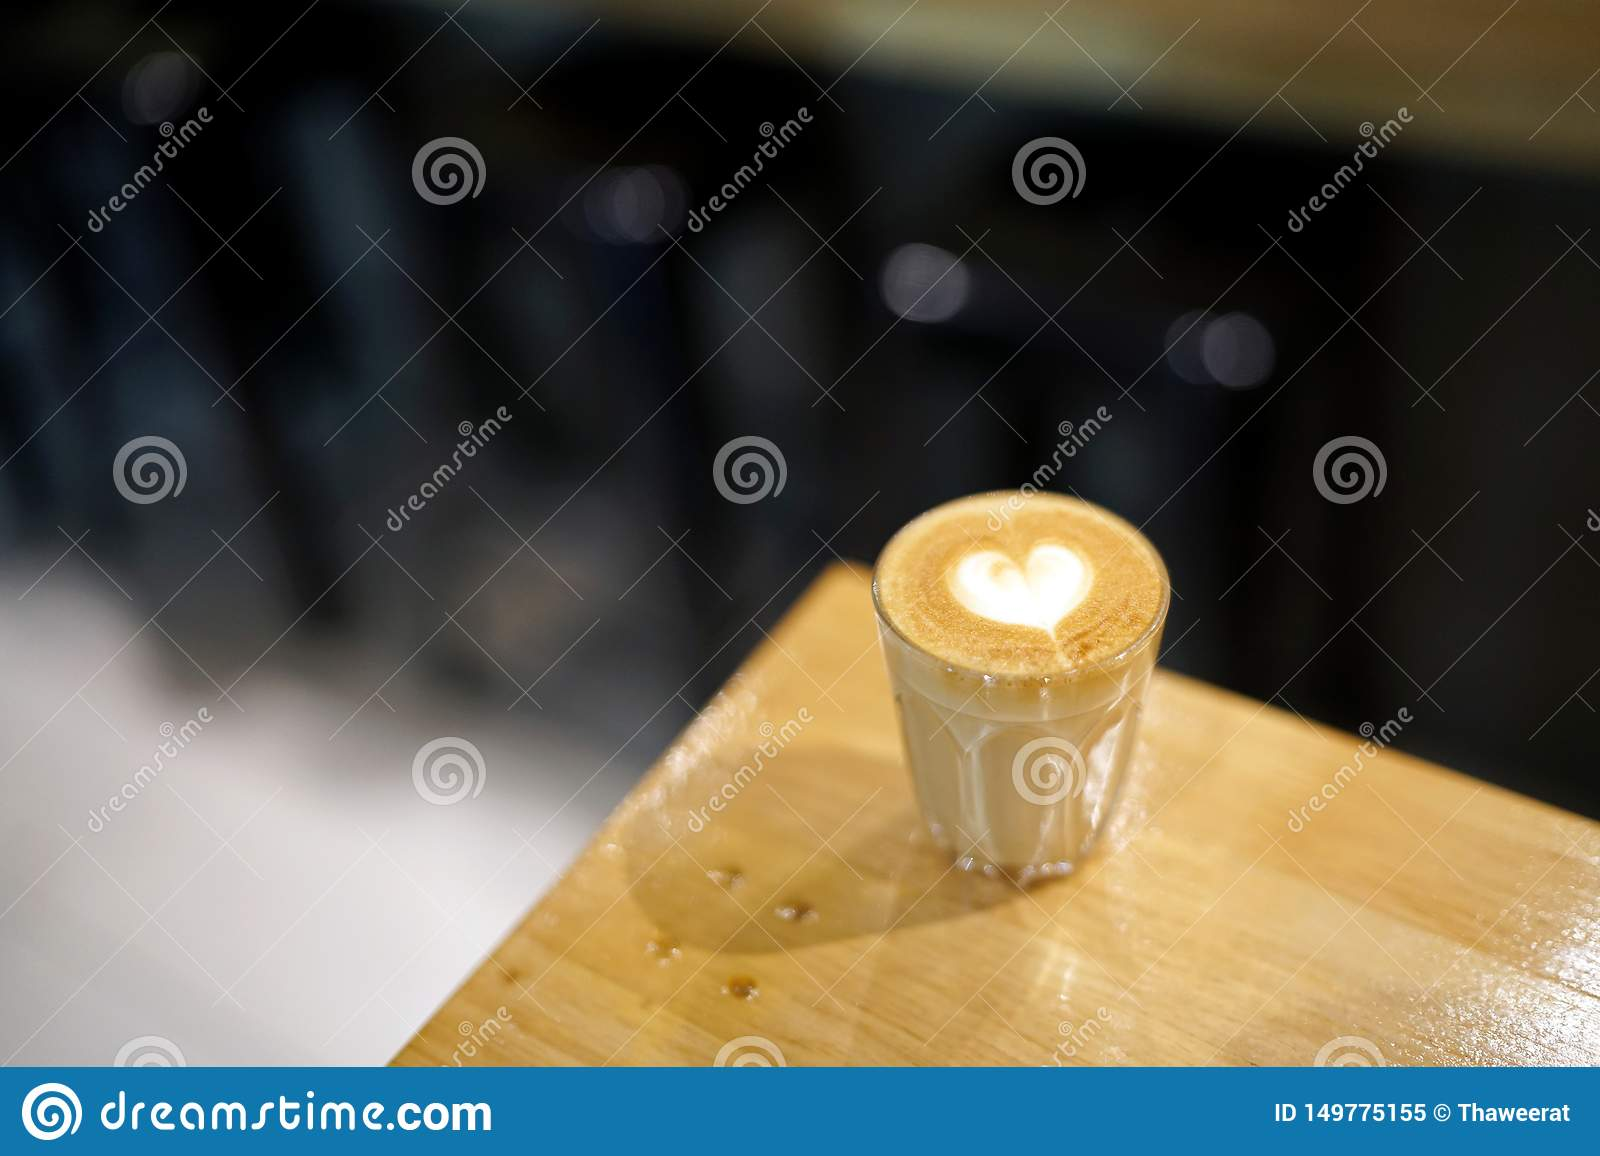 Hot Piccolo Latte - A Glass Of Coffee With Milk And ...